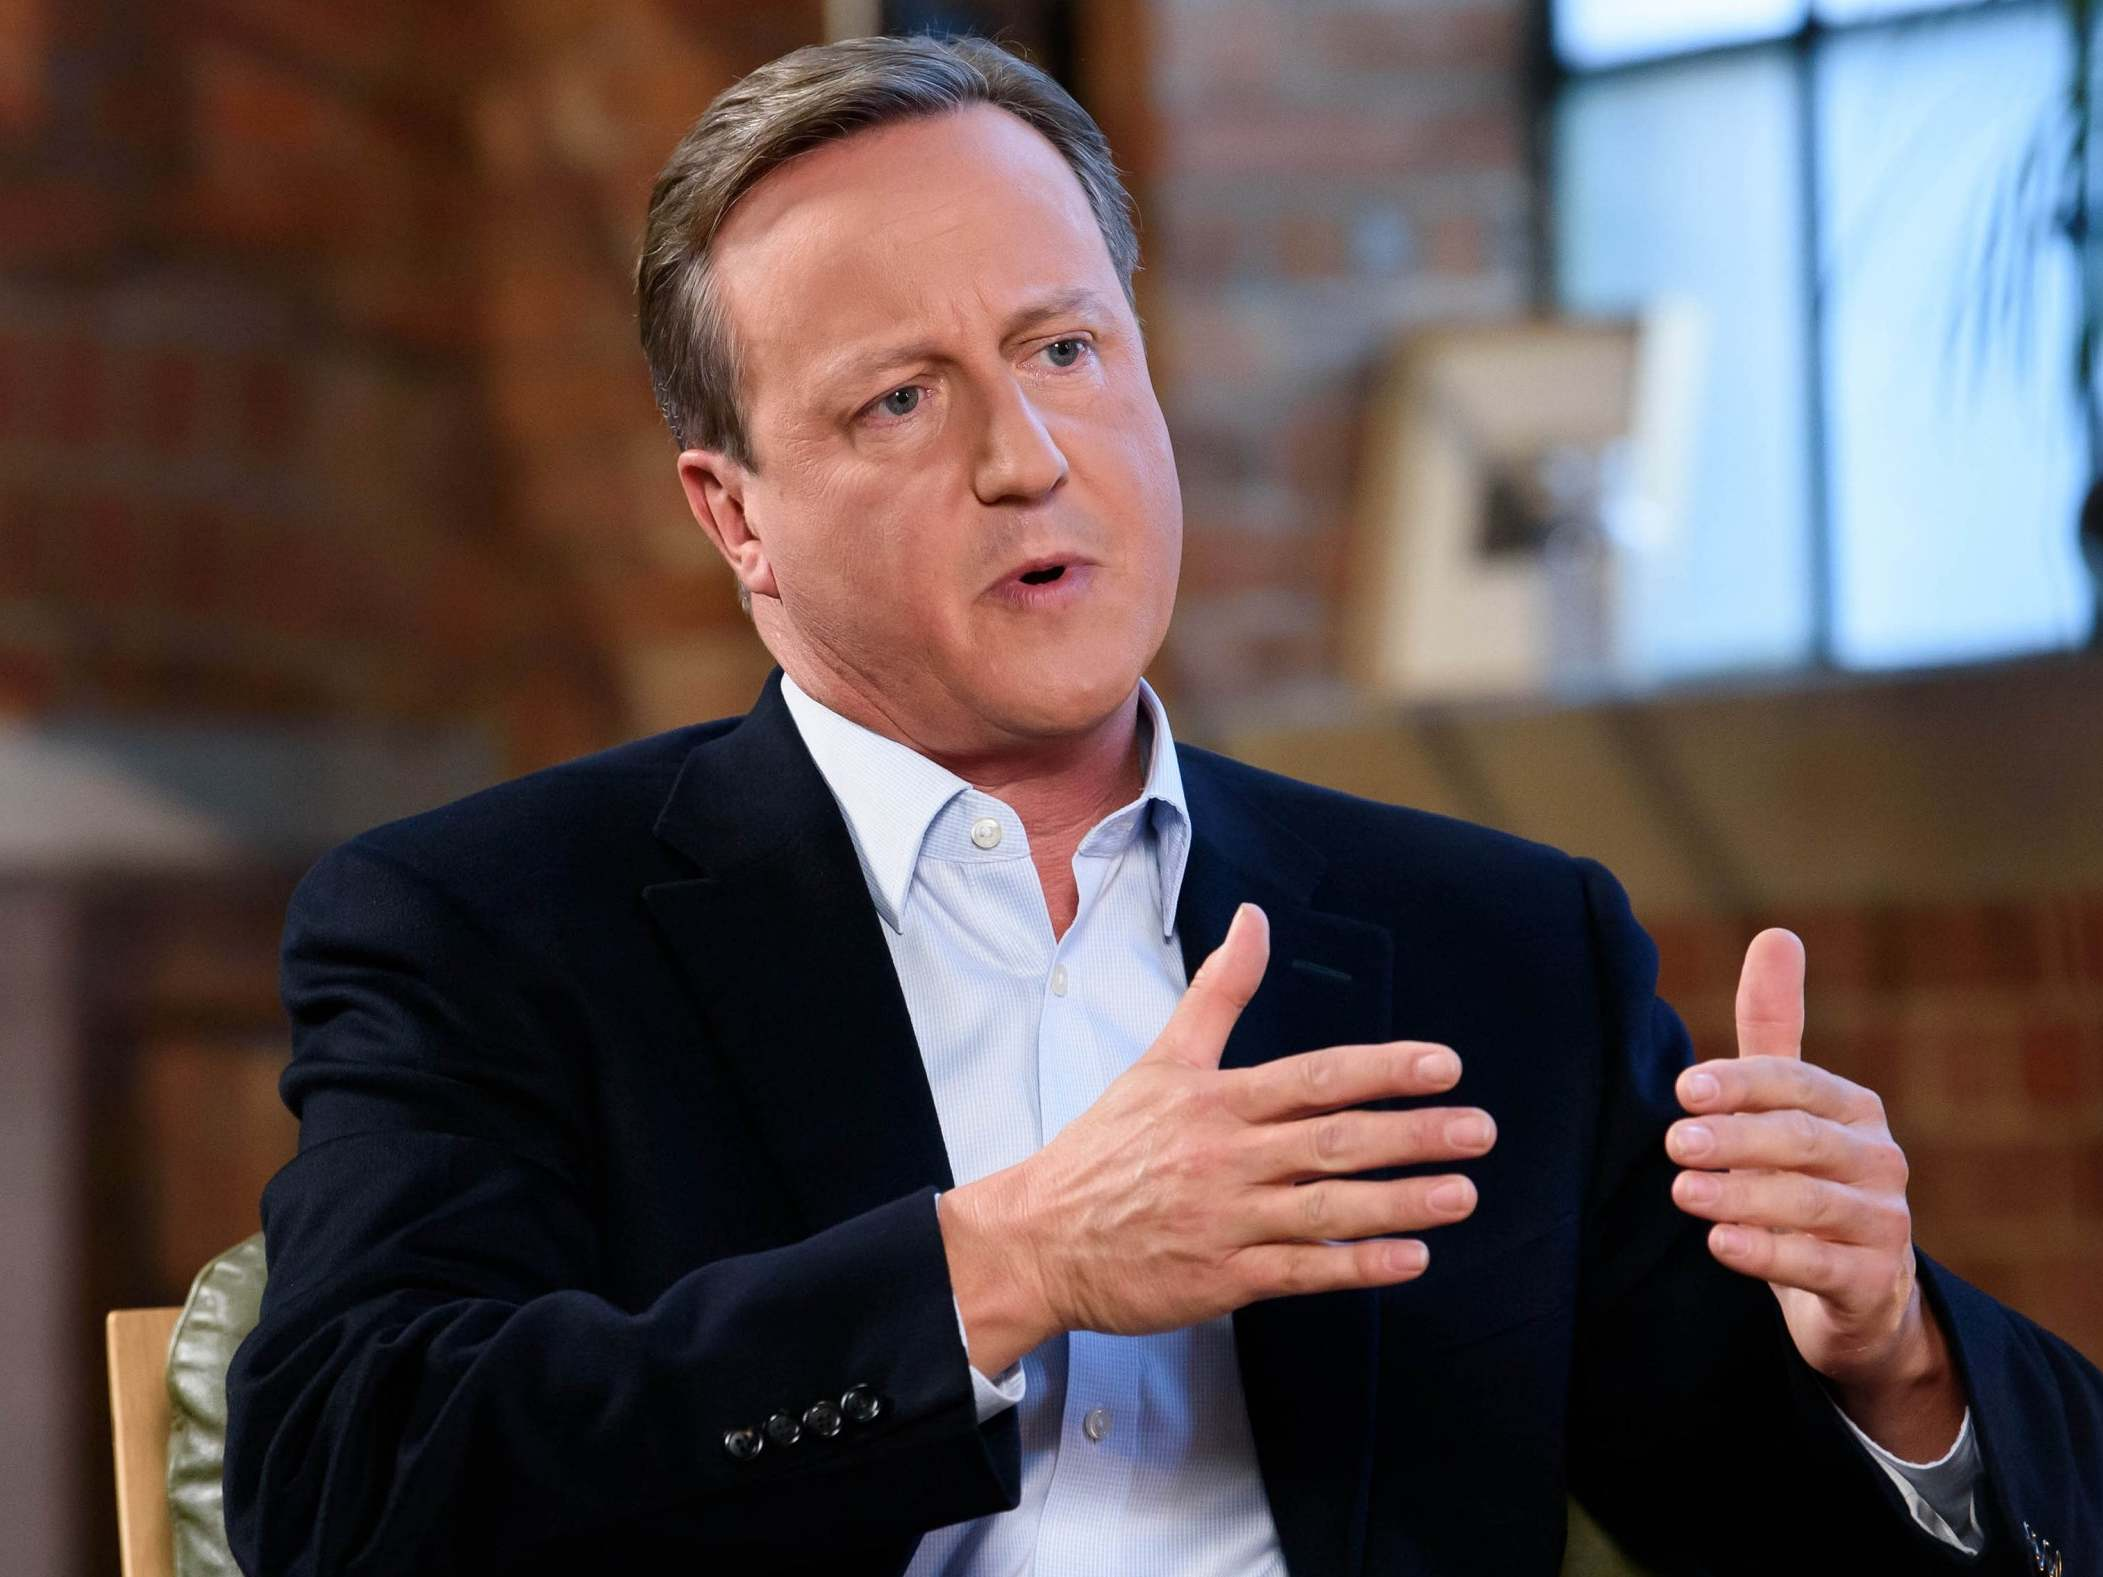 Cameron warns Johnson breaking the law is 'not a good idea' ahead of crucial Supreme Court ruling